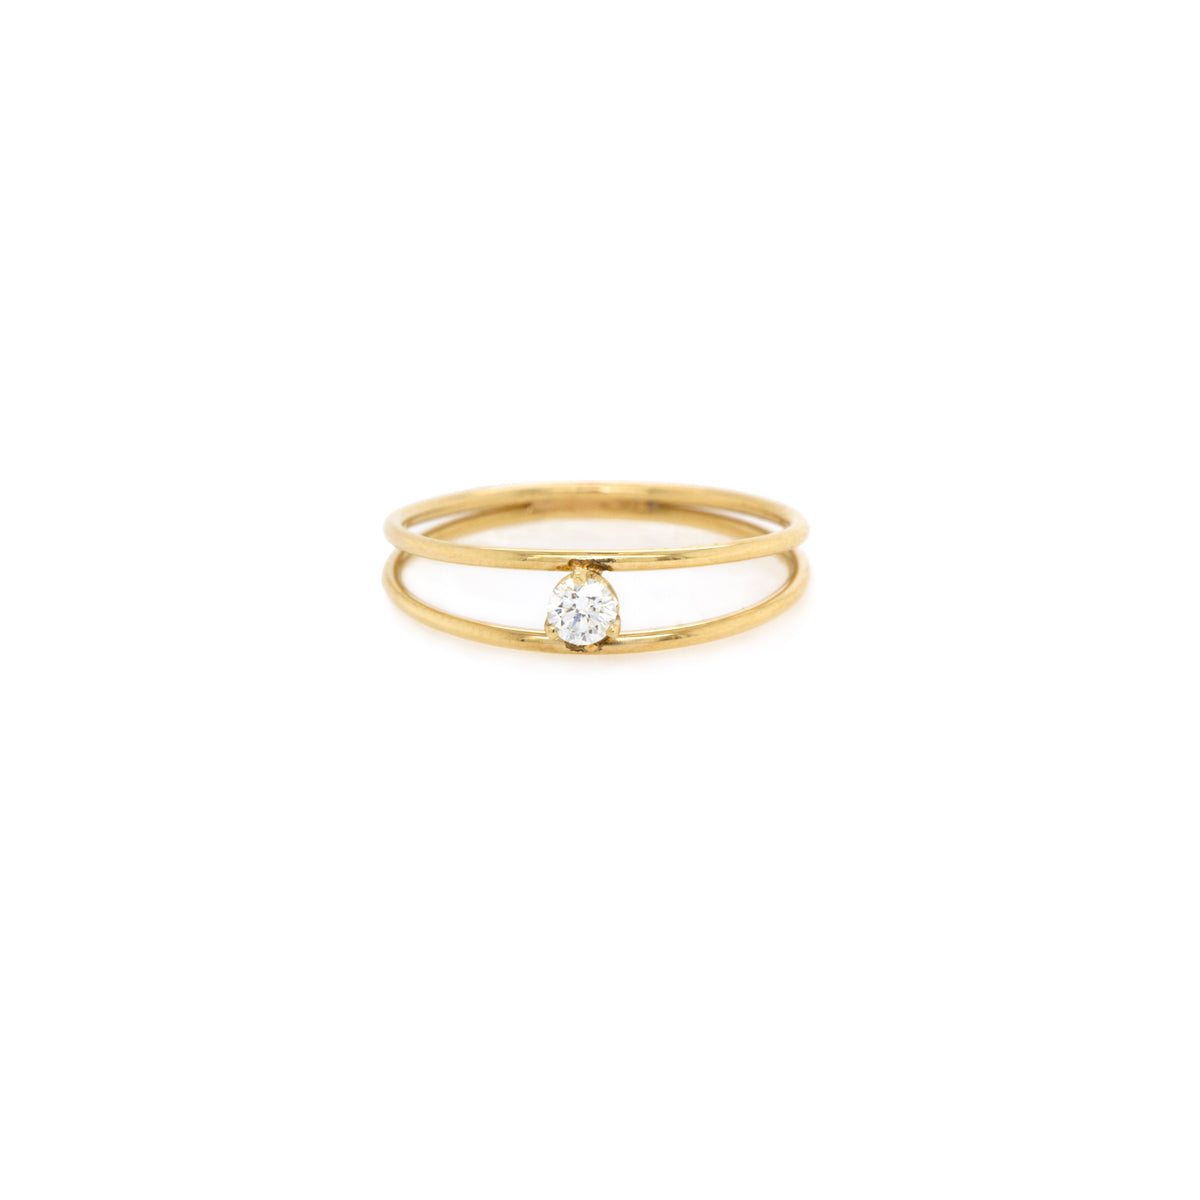 14k gold double band ring with prong set diamond